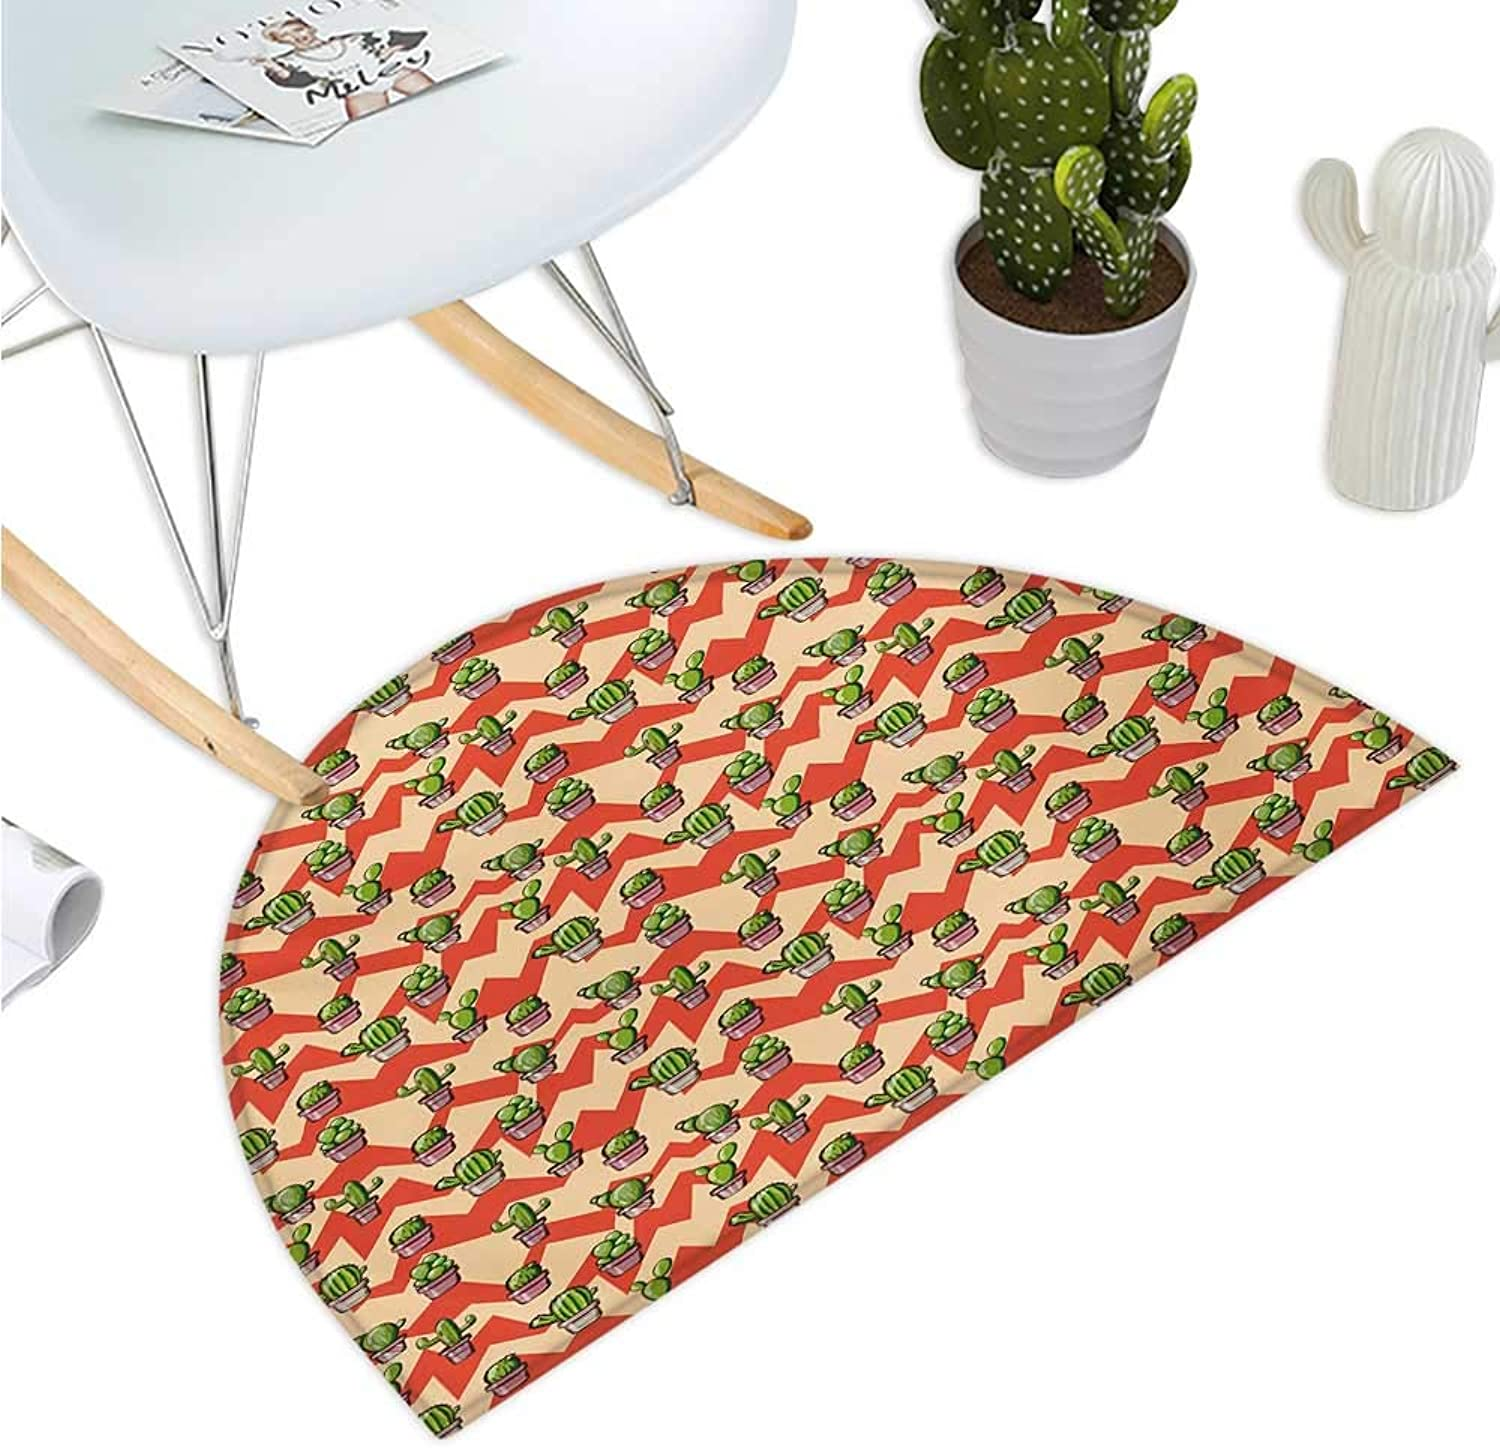 Cactus Semicircular Cushion Geometric Background with Zigzags Mexican Inspirations Plant Arrangement Botanical Bathroom Mat H 43.3  xD 64.9  Multicolor